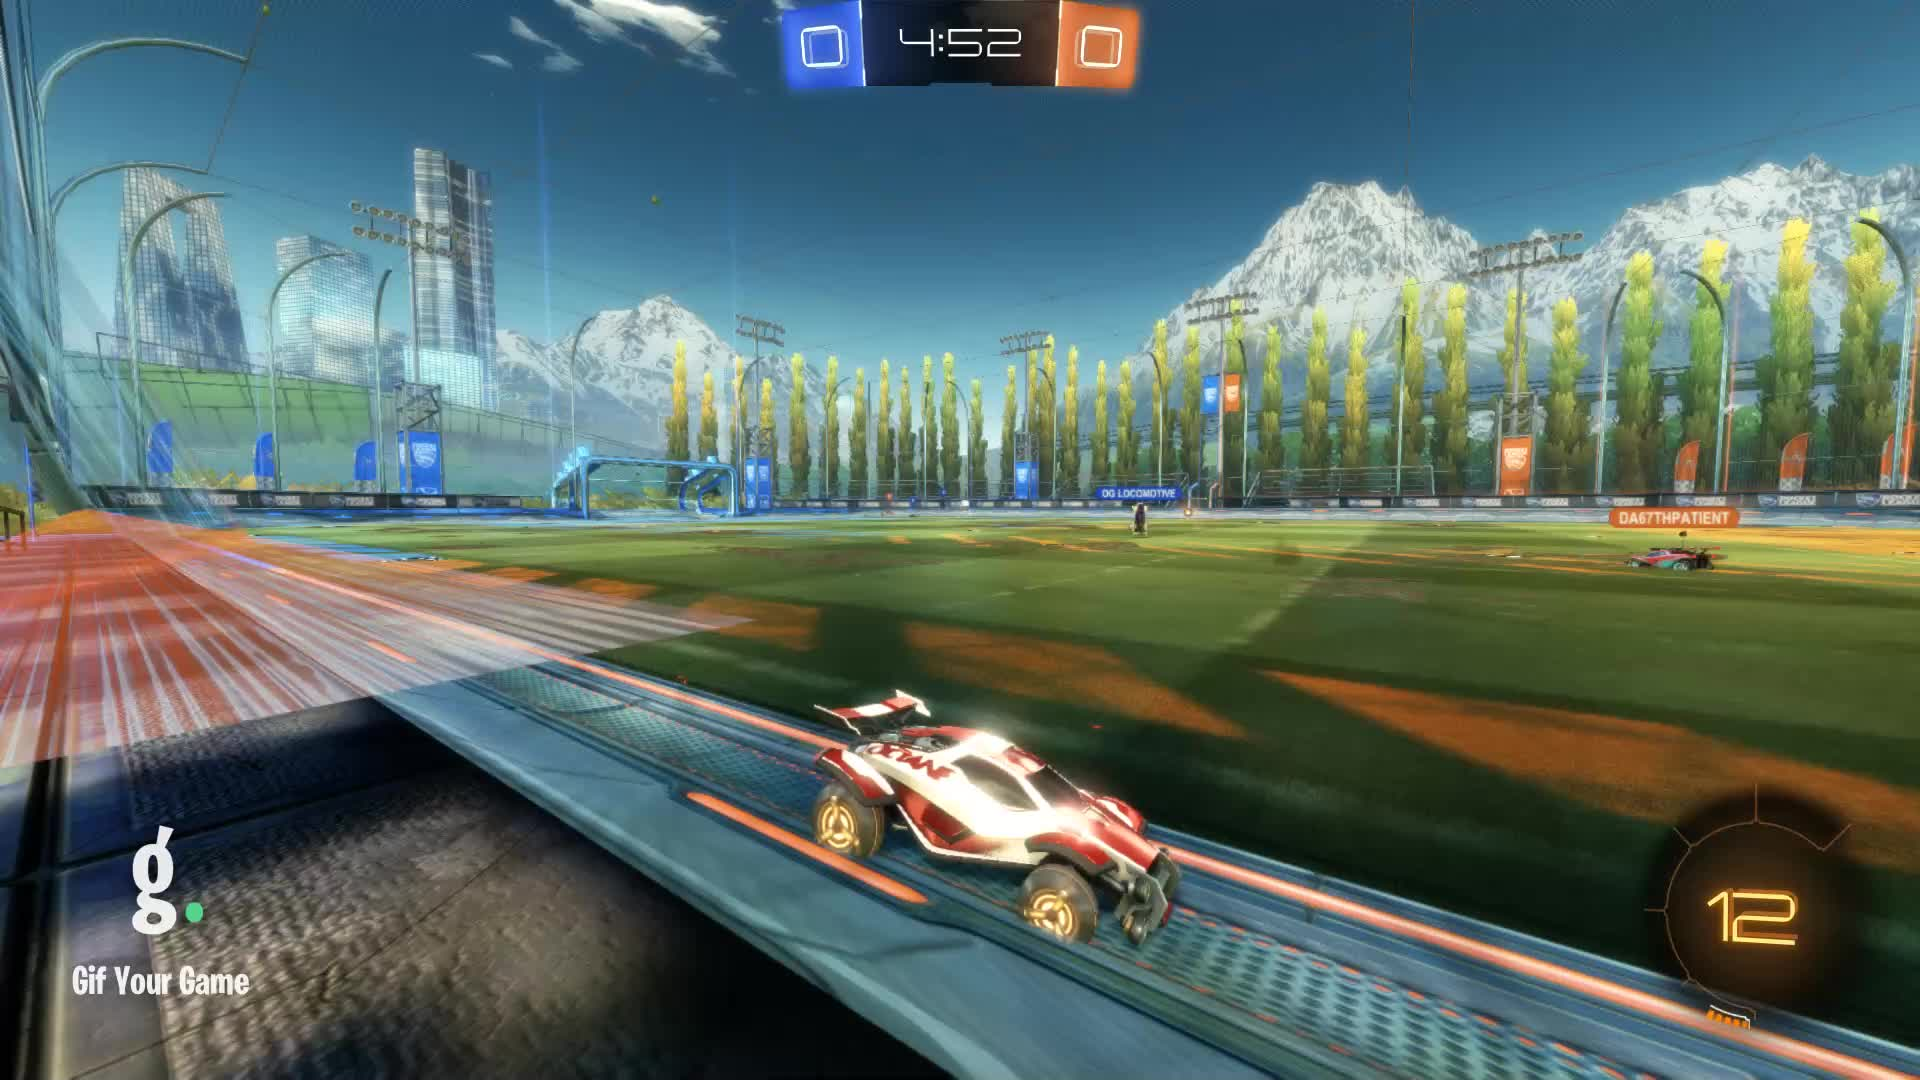 Gif Your Game, GifYourGame, ItWas...Justified, Rocket League, RocketLeague, Save, Save 1: ItWas...Justified GIFs